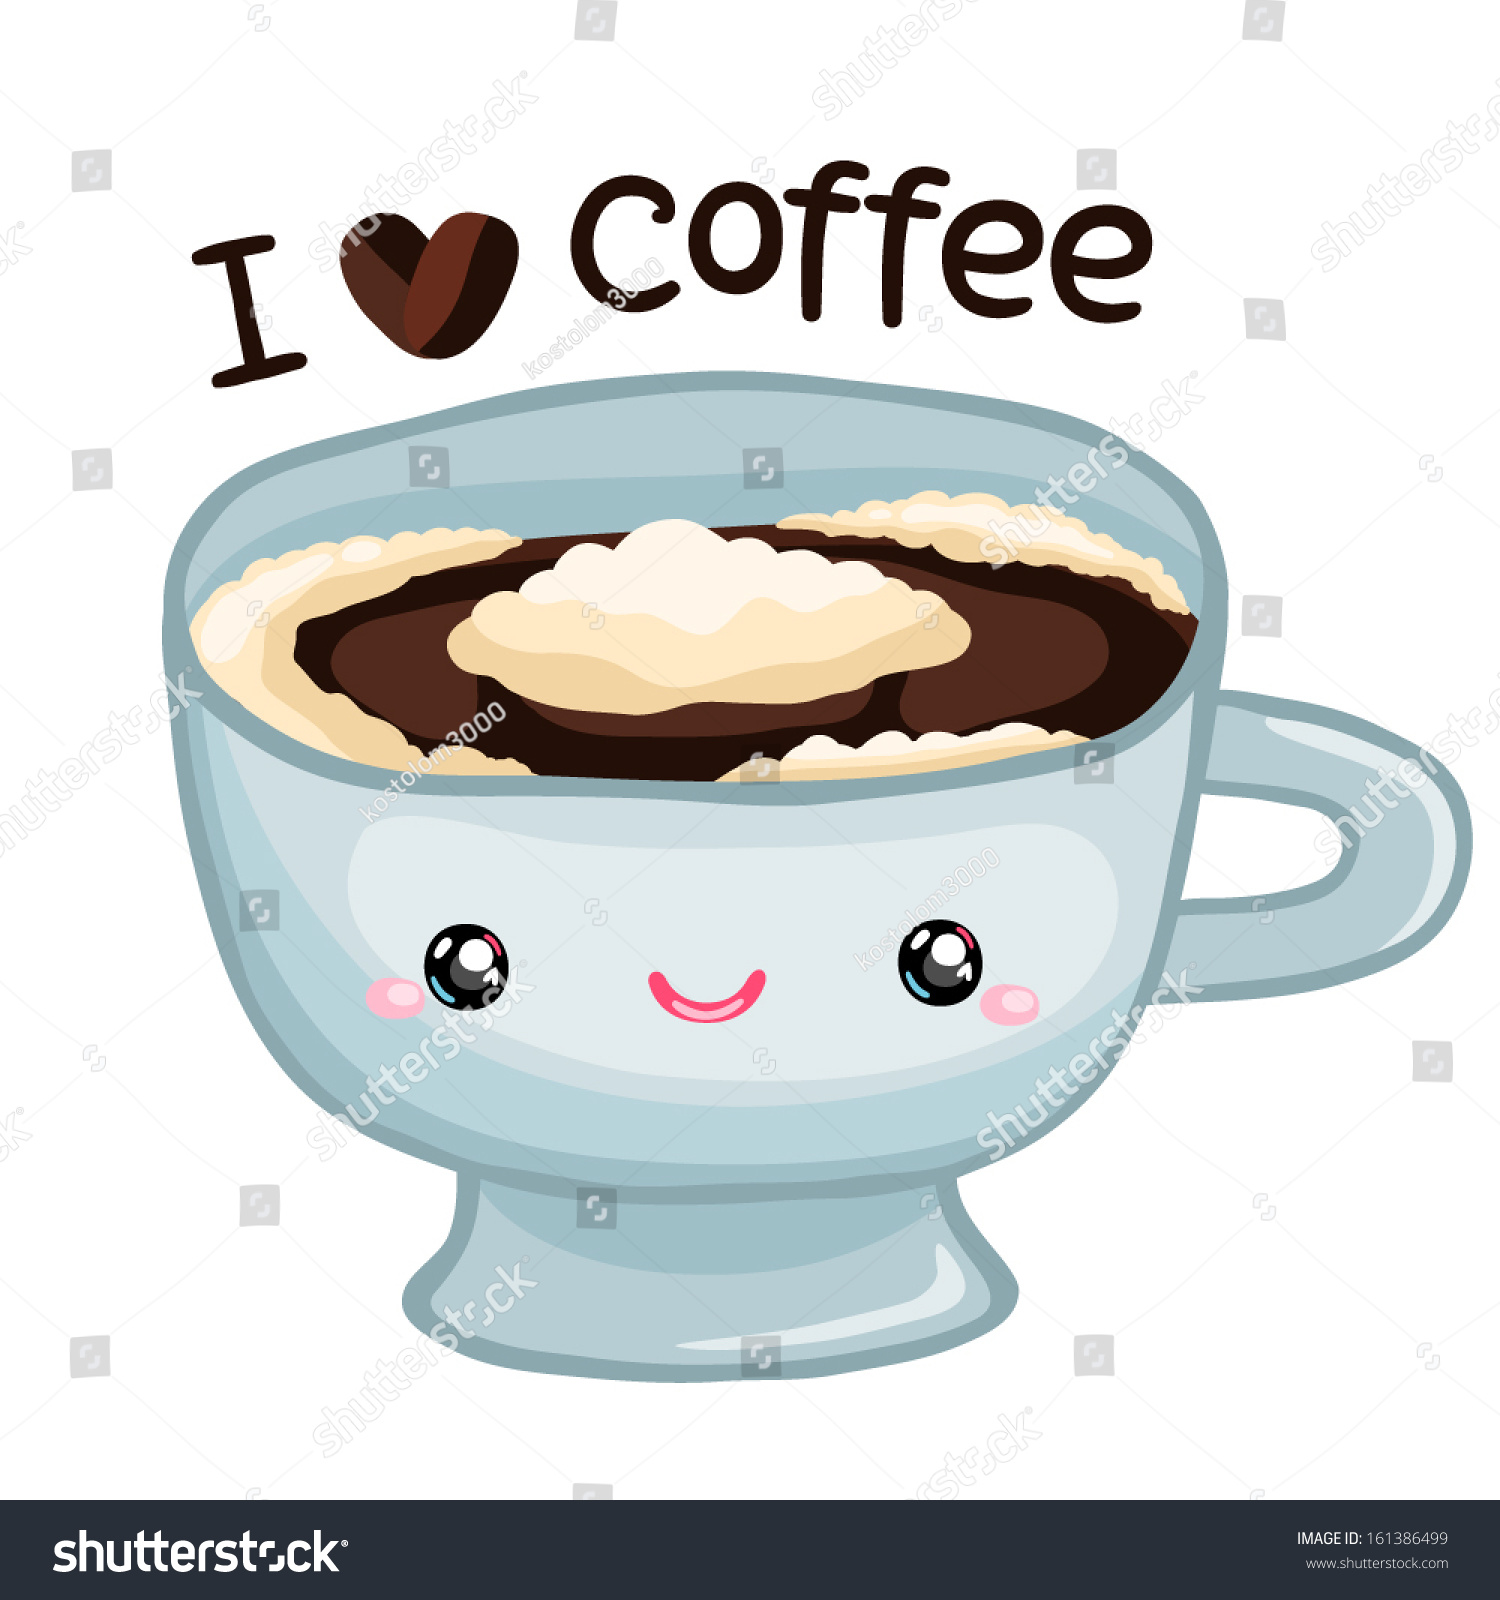 Cute Cartoon Coffee Cup Stock Vector 161386499 Shutterstock